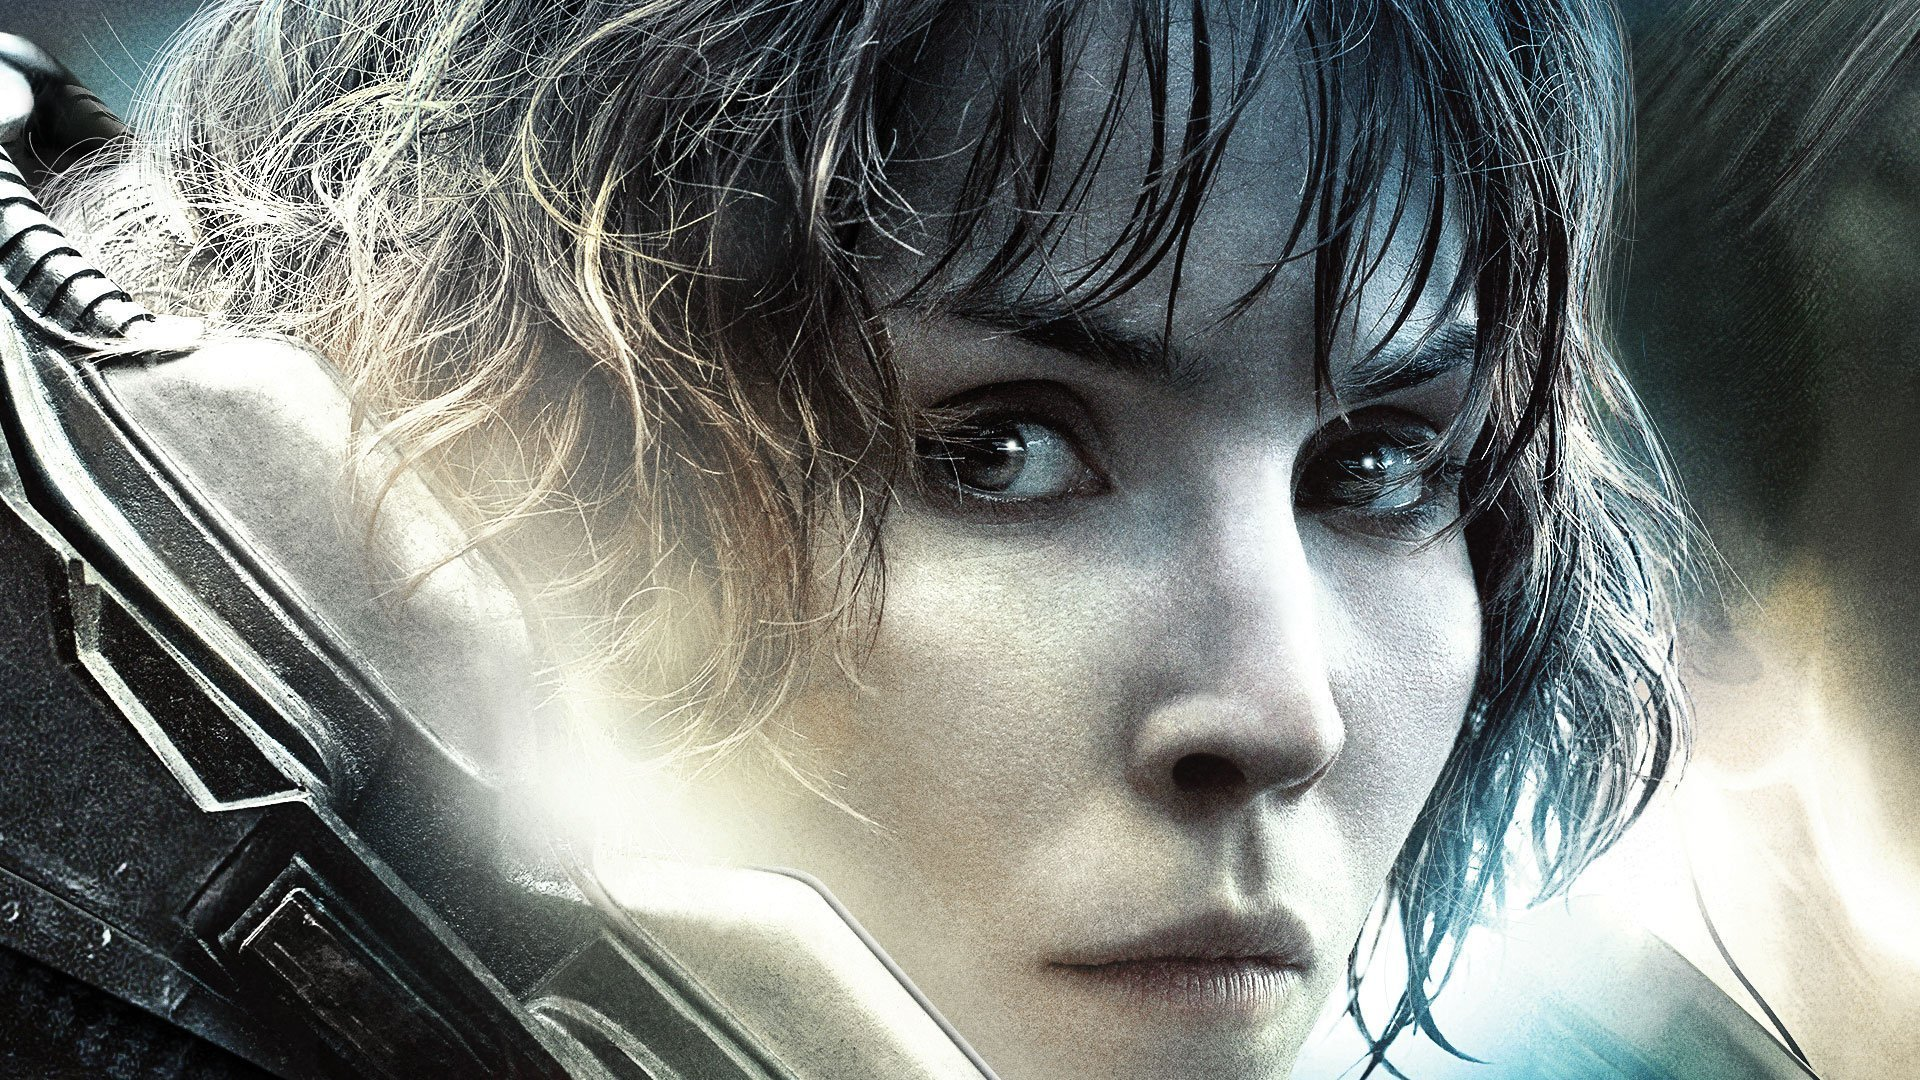 Photo du film Prometheus avec Noomi Rapace (Elizabeth Shaw)